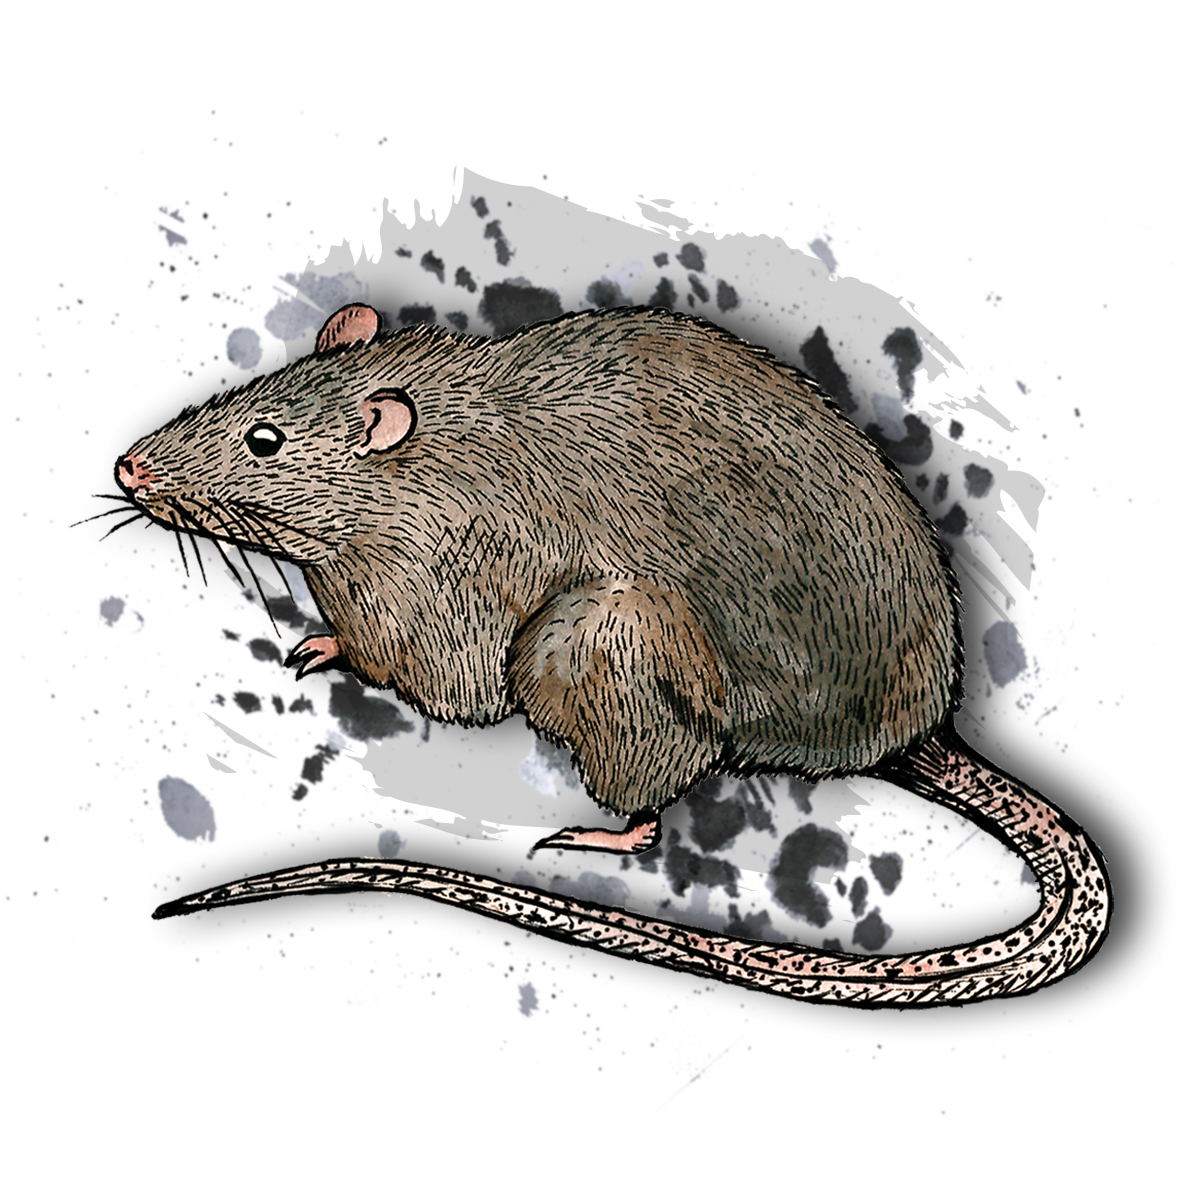 1. Brown Rat